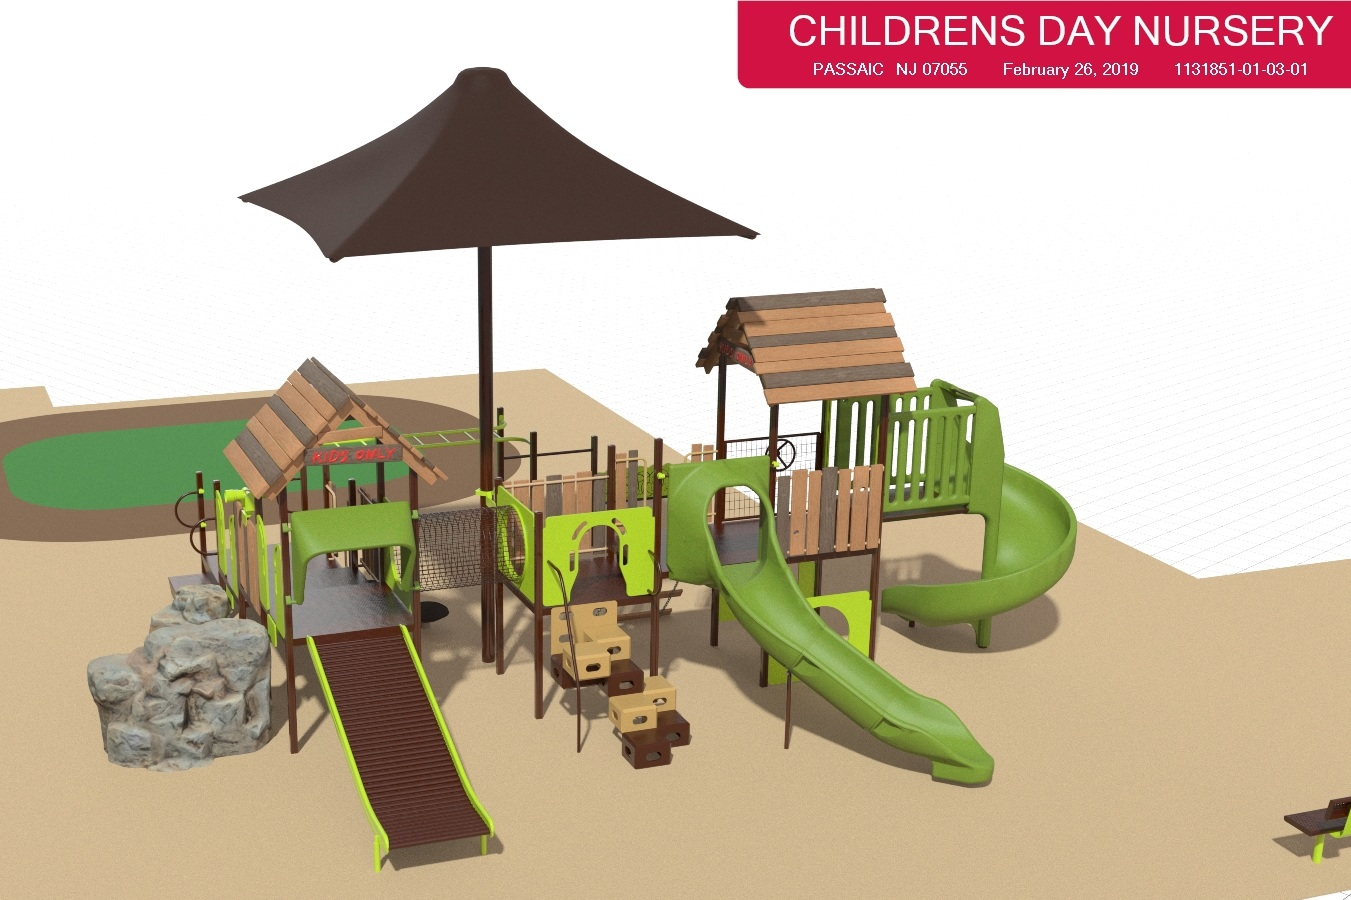 Just one of the play structures that are part of our overall playground design.